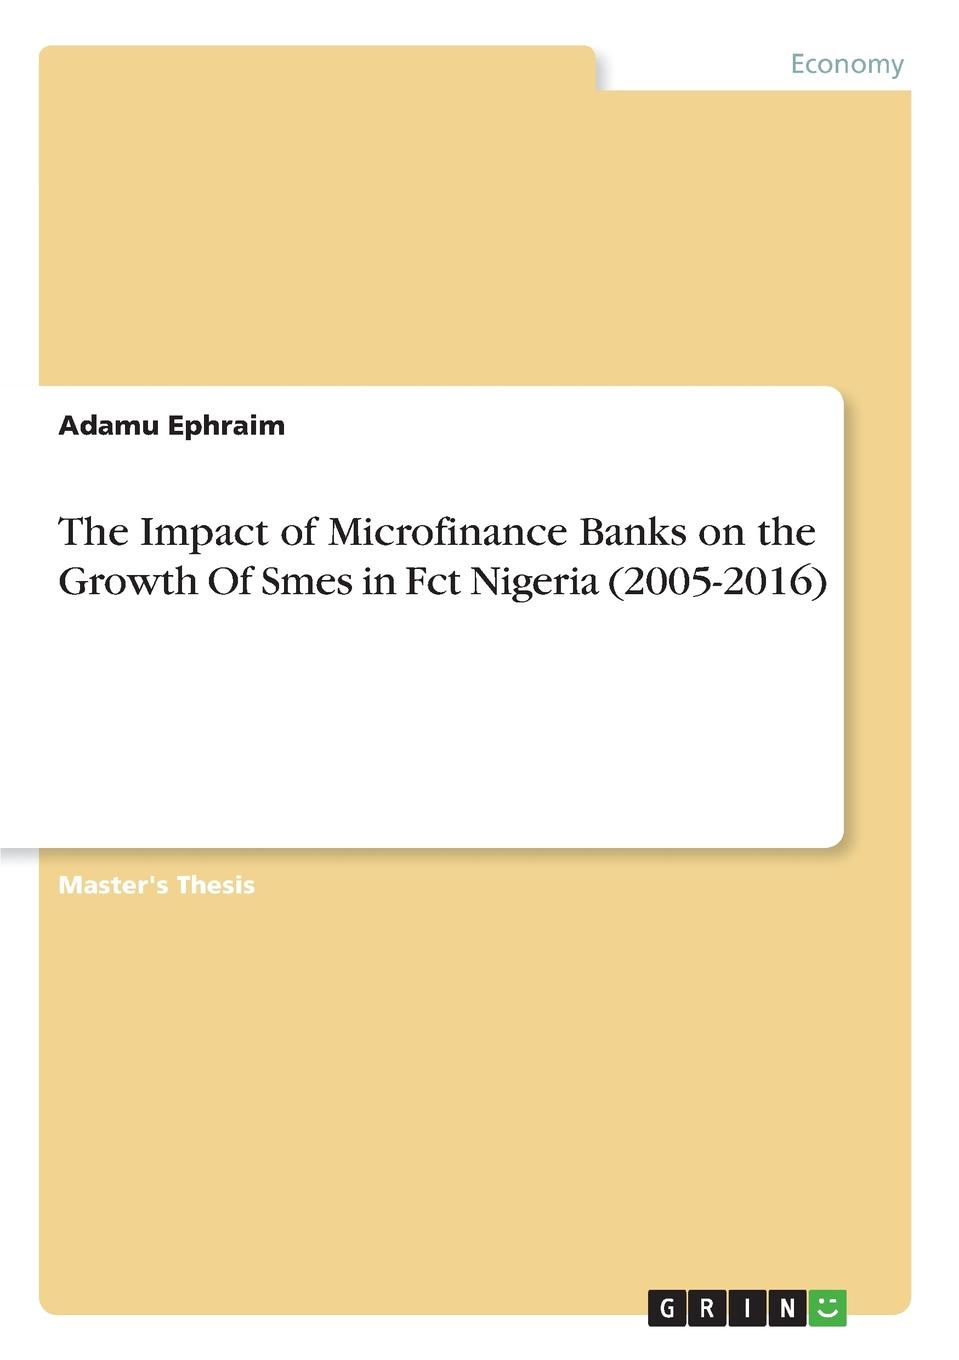 Adamu Ephraim The Impact of Microfinance Banks on the Growth Of Smes in Fct Nigeria (2005-2016) socio economic determinants of performance of smes